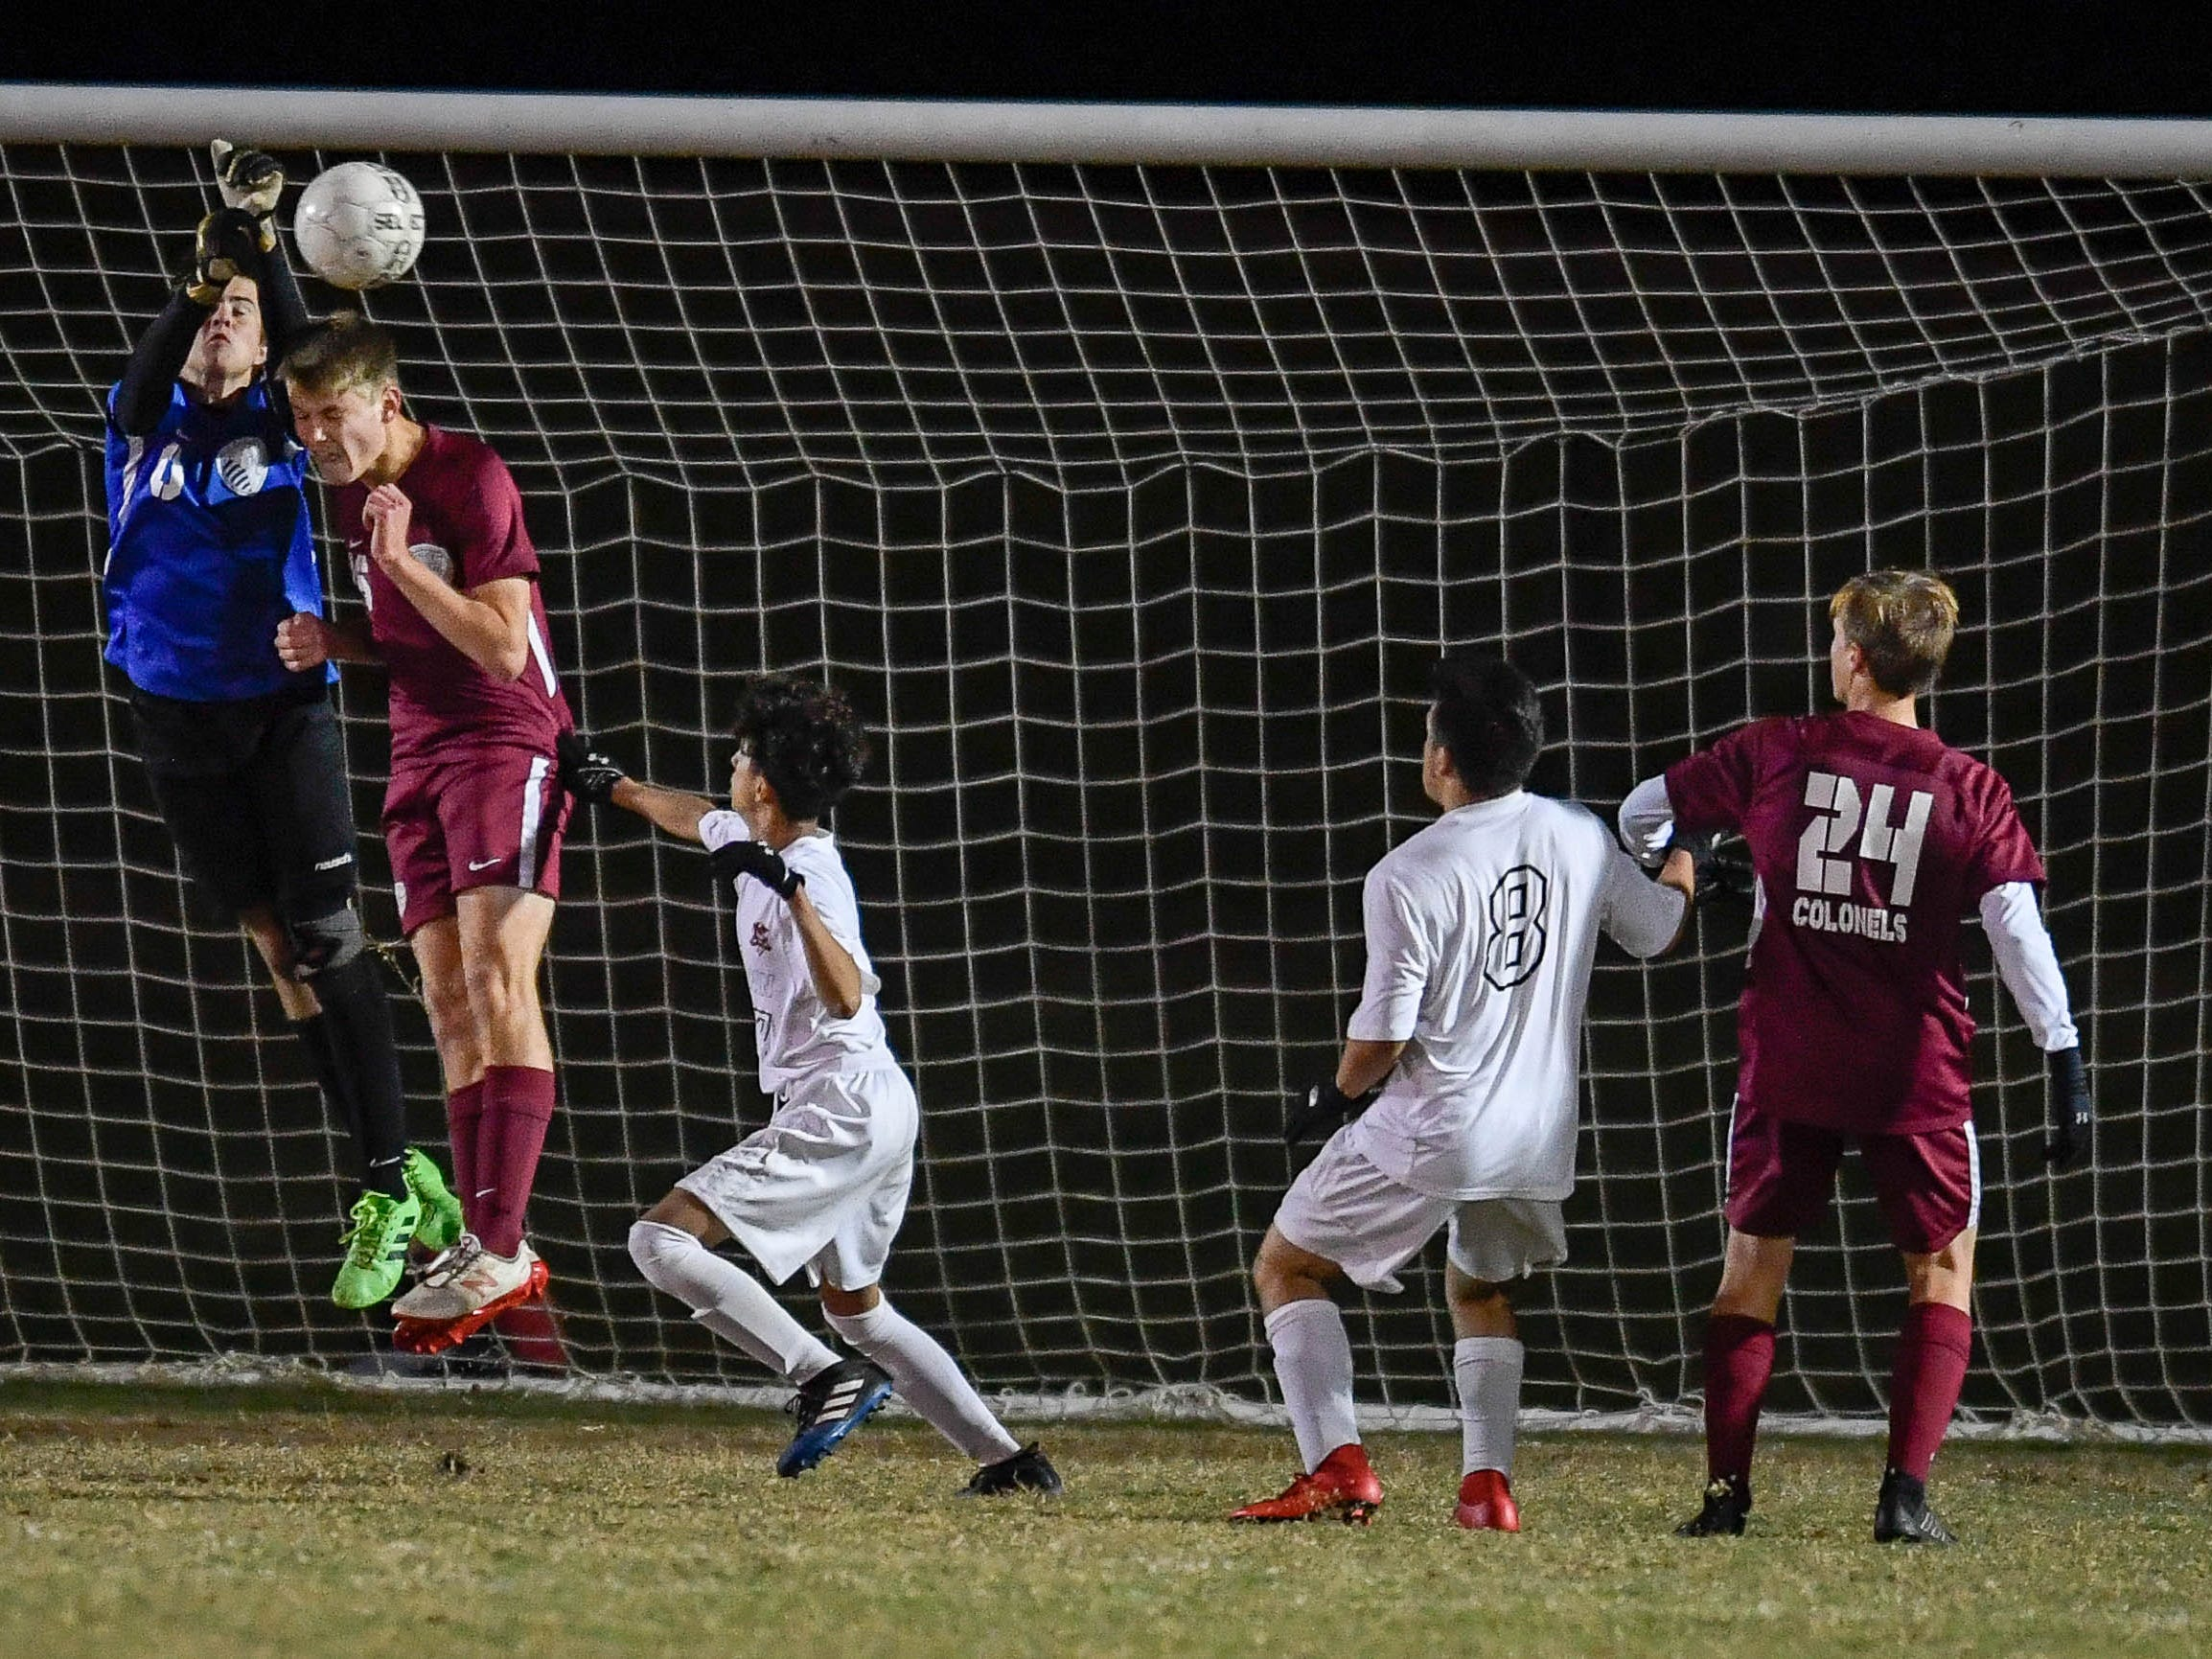 Henderson County goalie Adam Beickman (0) and teammate Lucas Butler (16) block a goal shot as the Henderson County Colonels play the Hopkinsville Tigers in the regional final at Madisonville-North Hopkins High School Thursday, October 18, 2018.